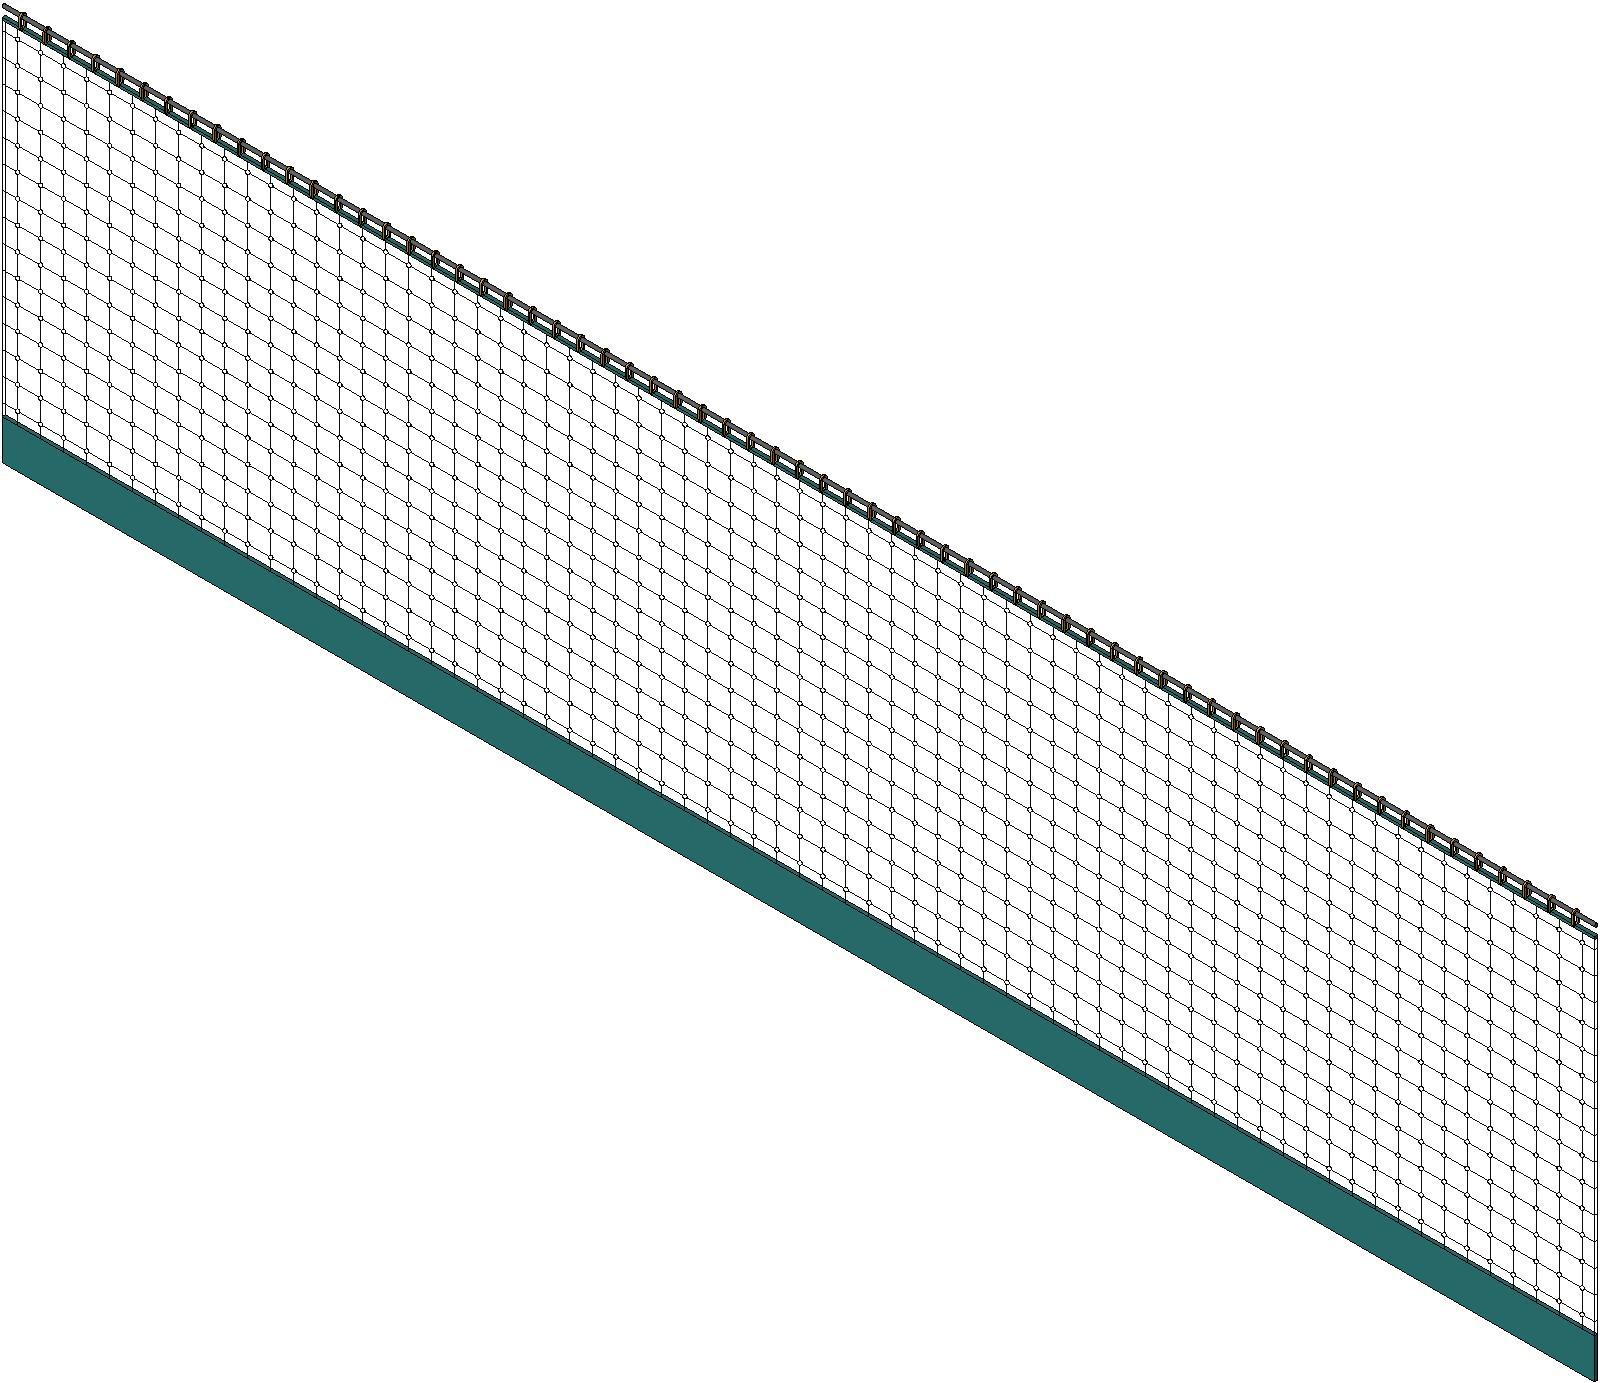 Clipart tennis net png library stock Tennis net clipart 6 » Clipart Portal png library stock